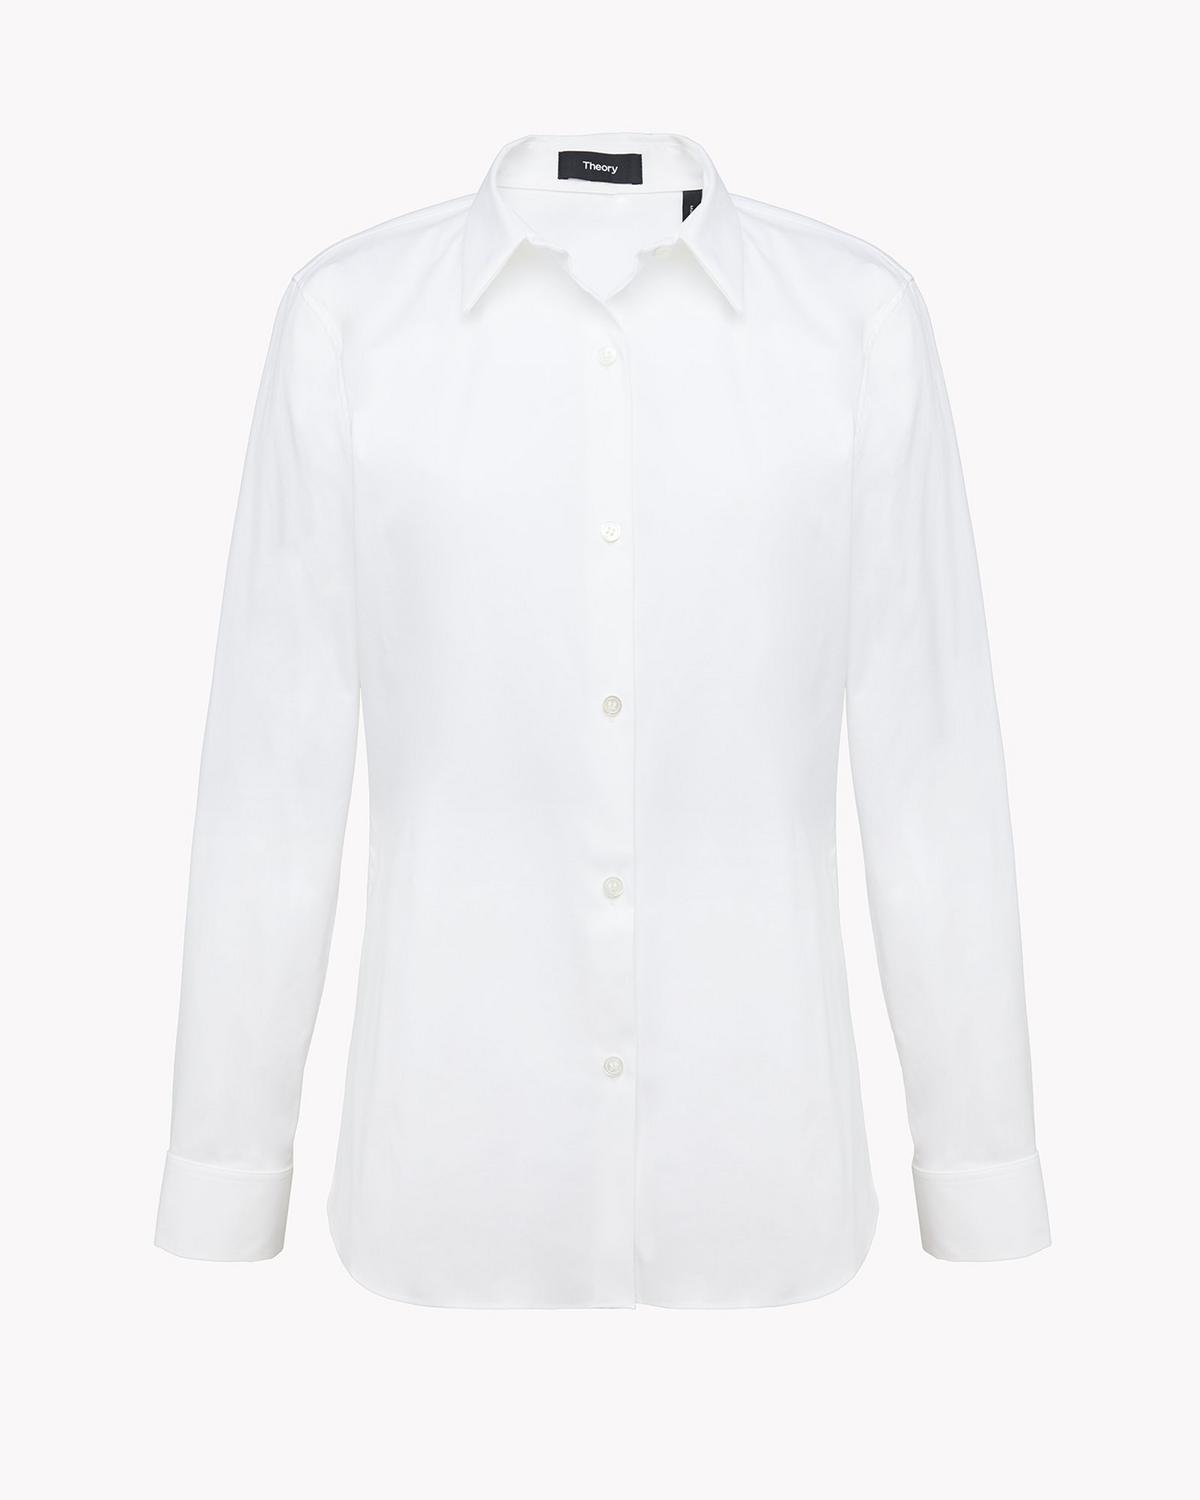 Theory Classic Shirt | Theory.com